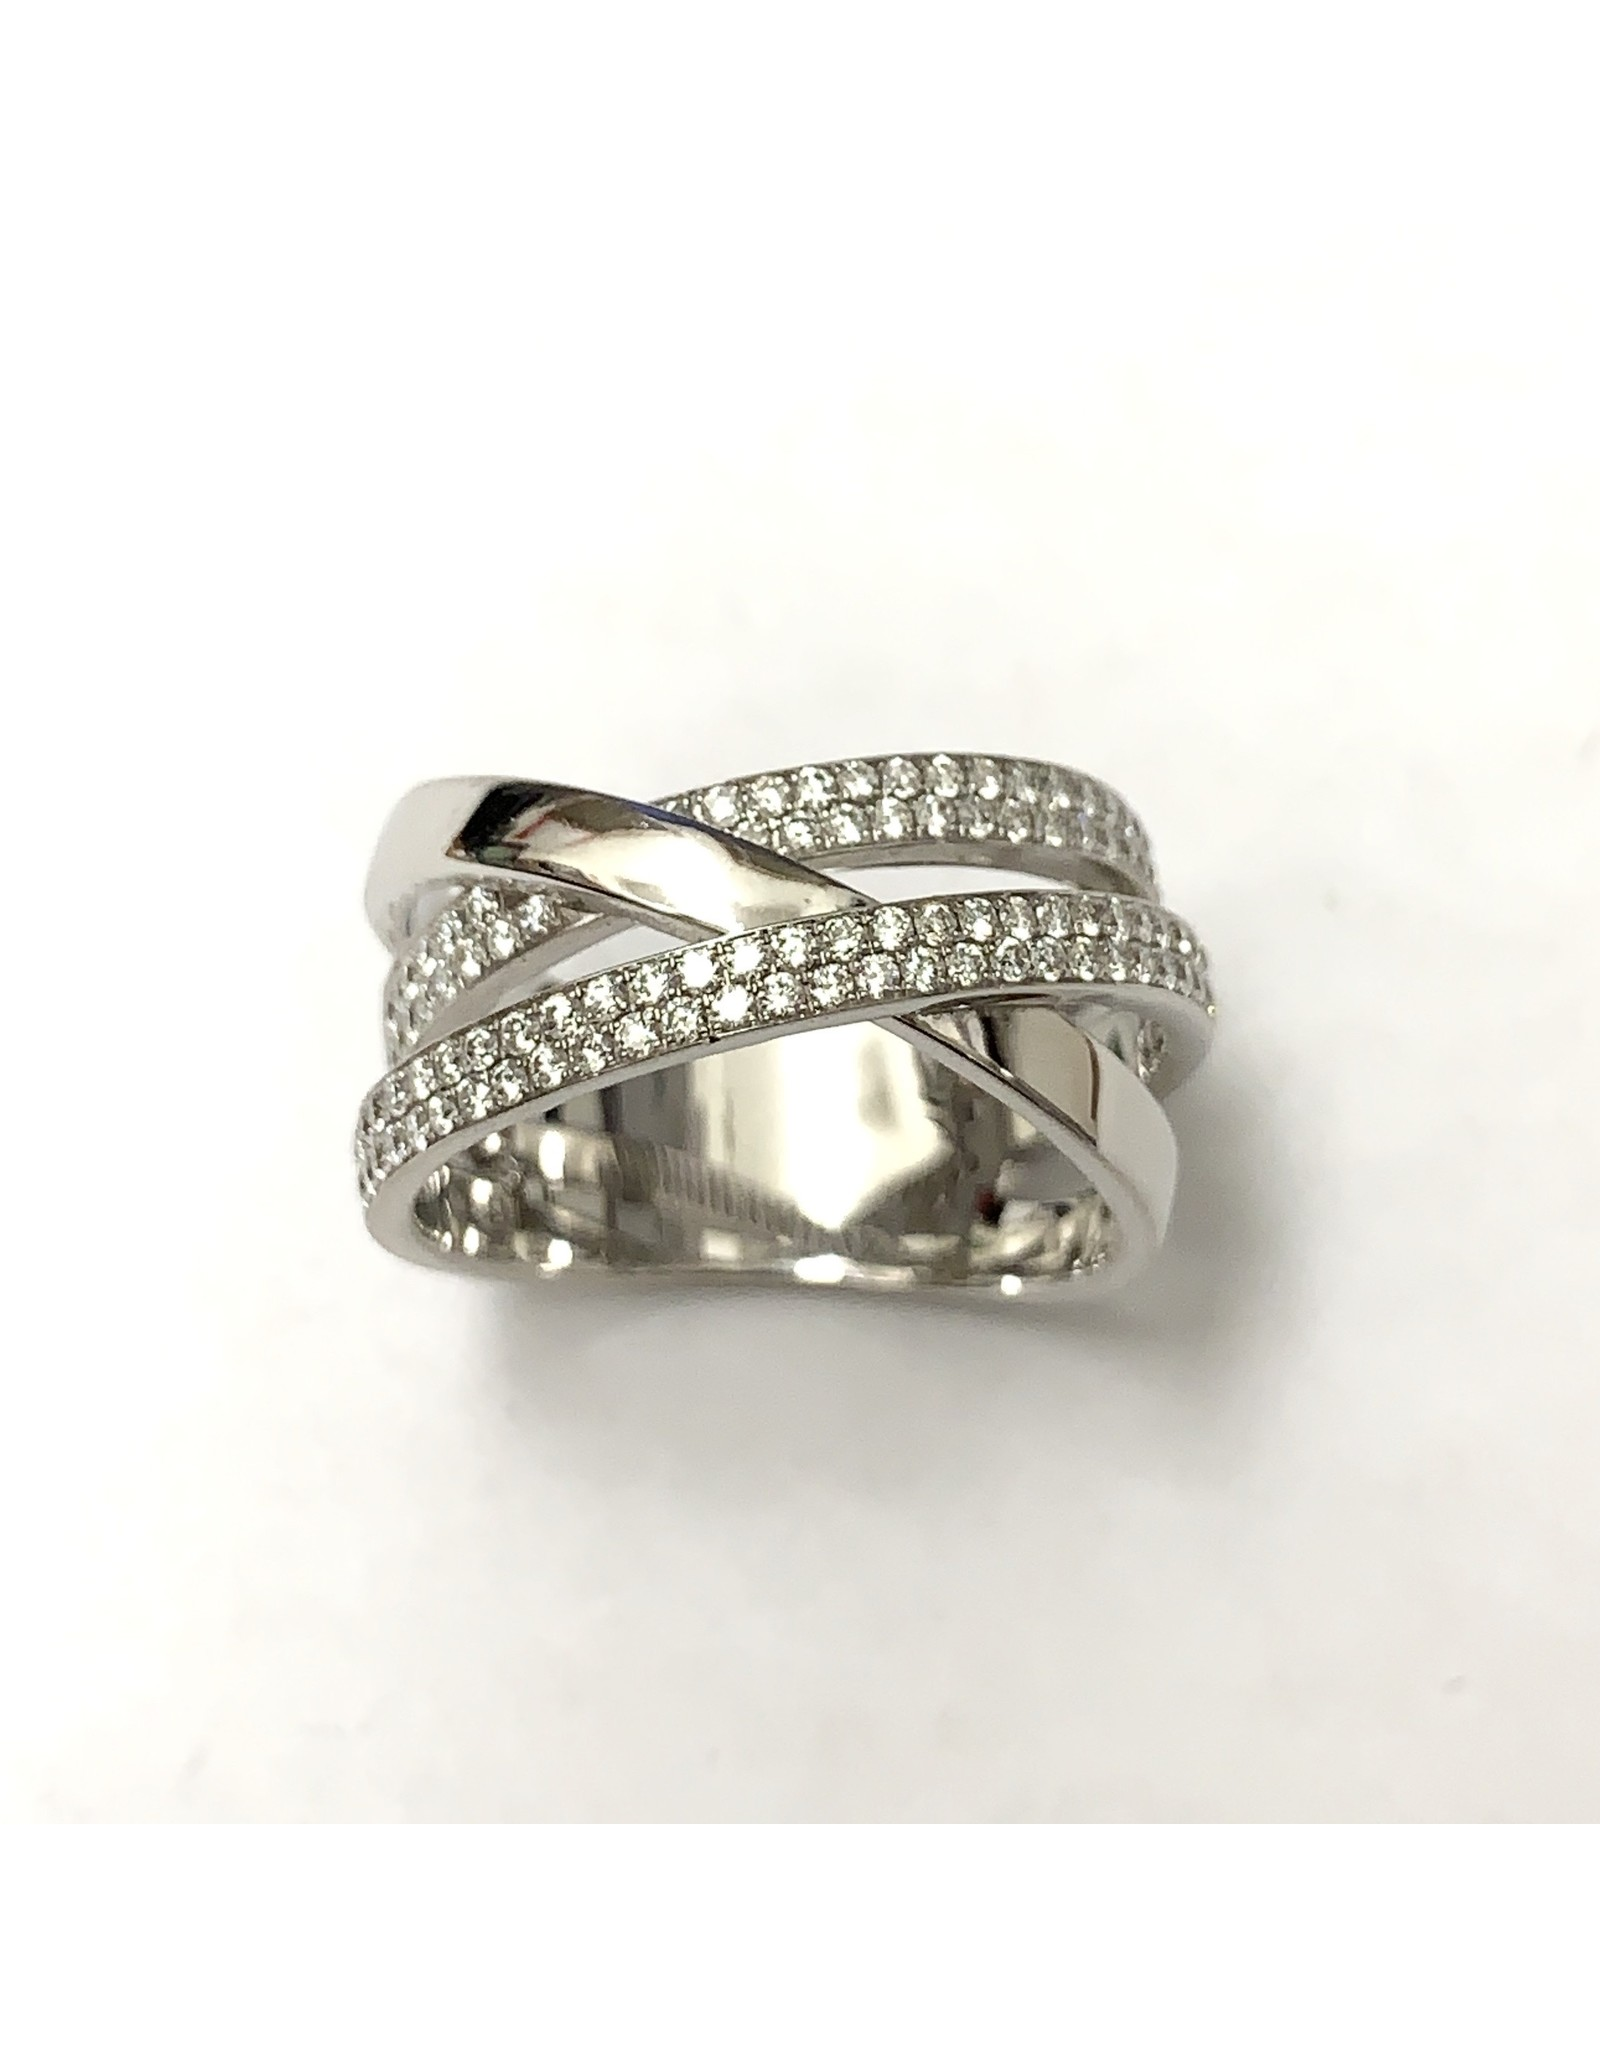 Double Crossover Pave Style Diamond Ring 14KW